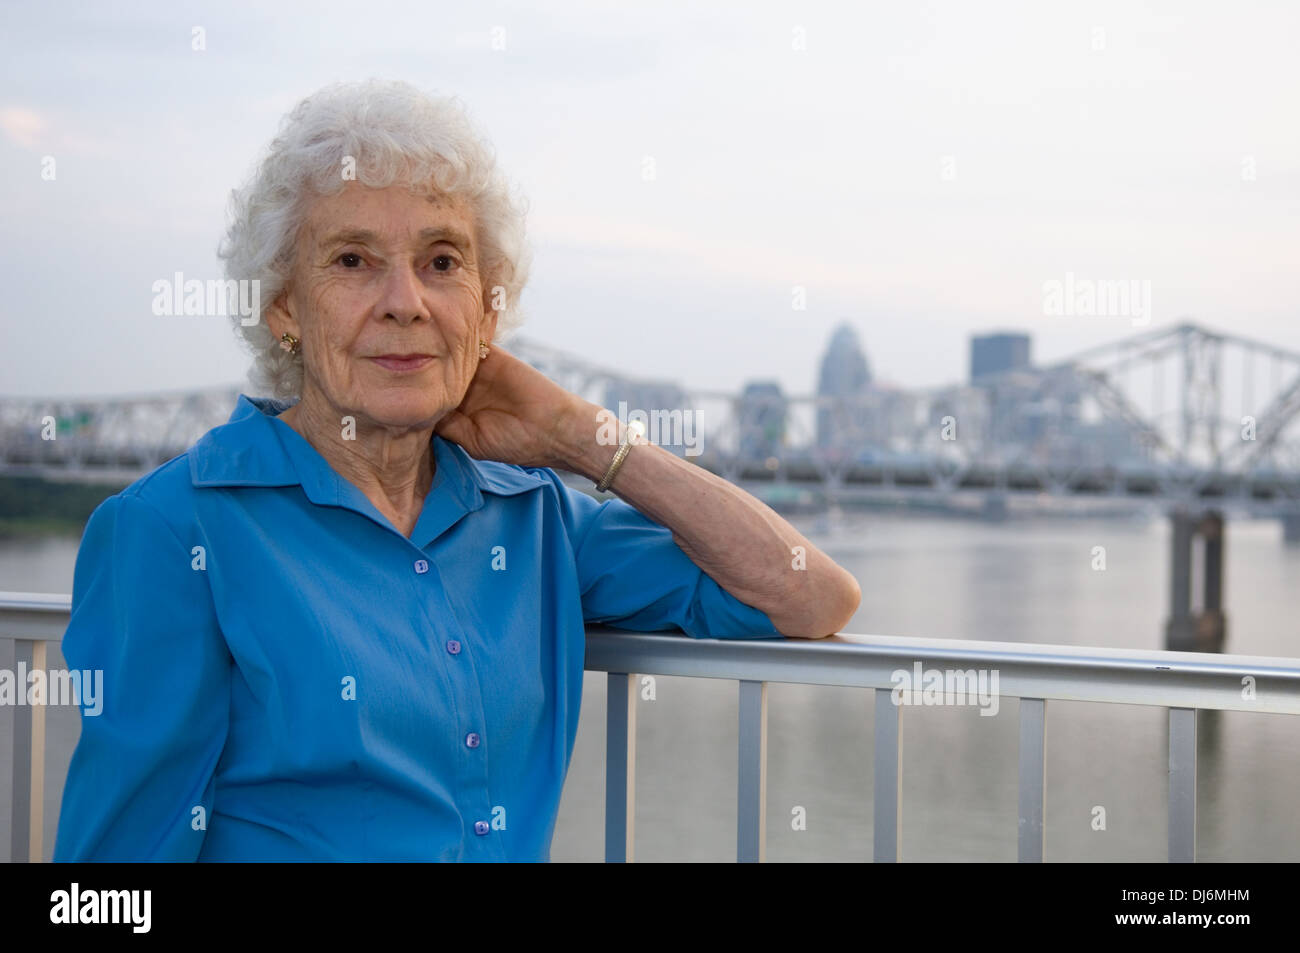 Senior Woman Posing for Photograph on the Big Four Pedestrian Bridge with Louisville Kentucky in the Background - Stock Image